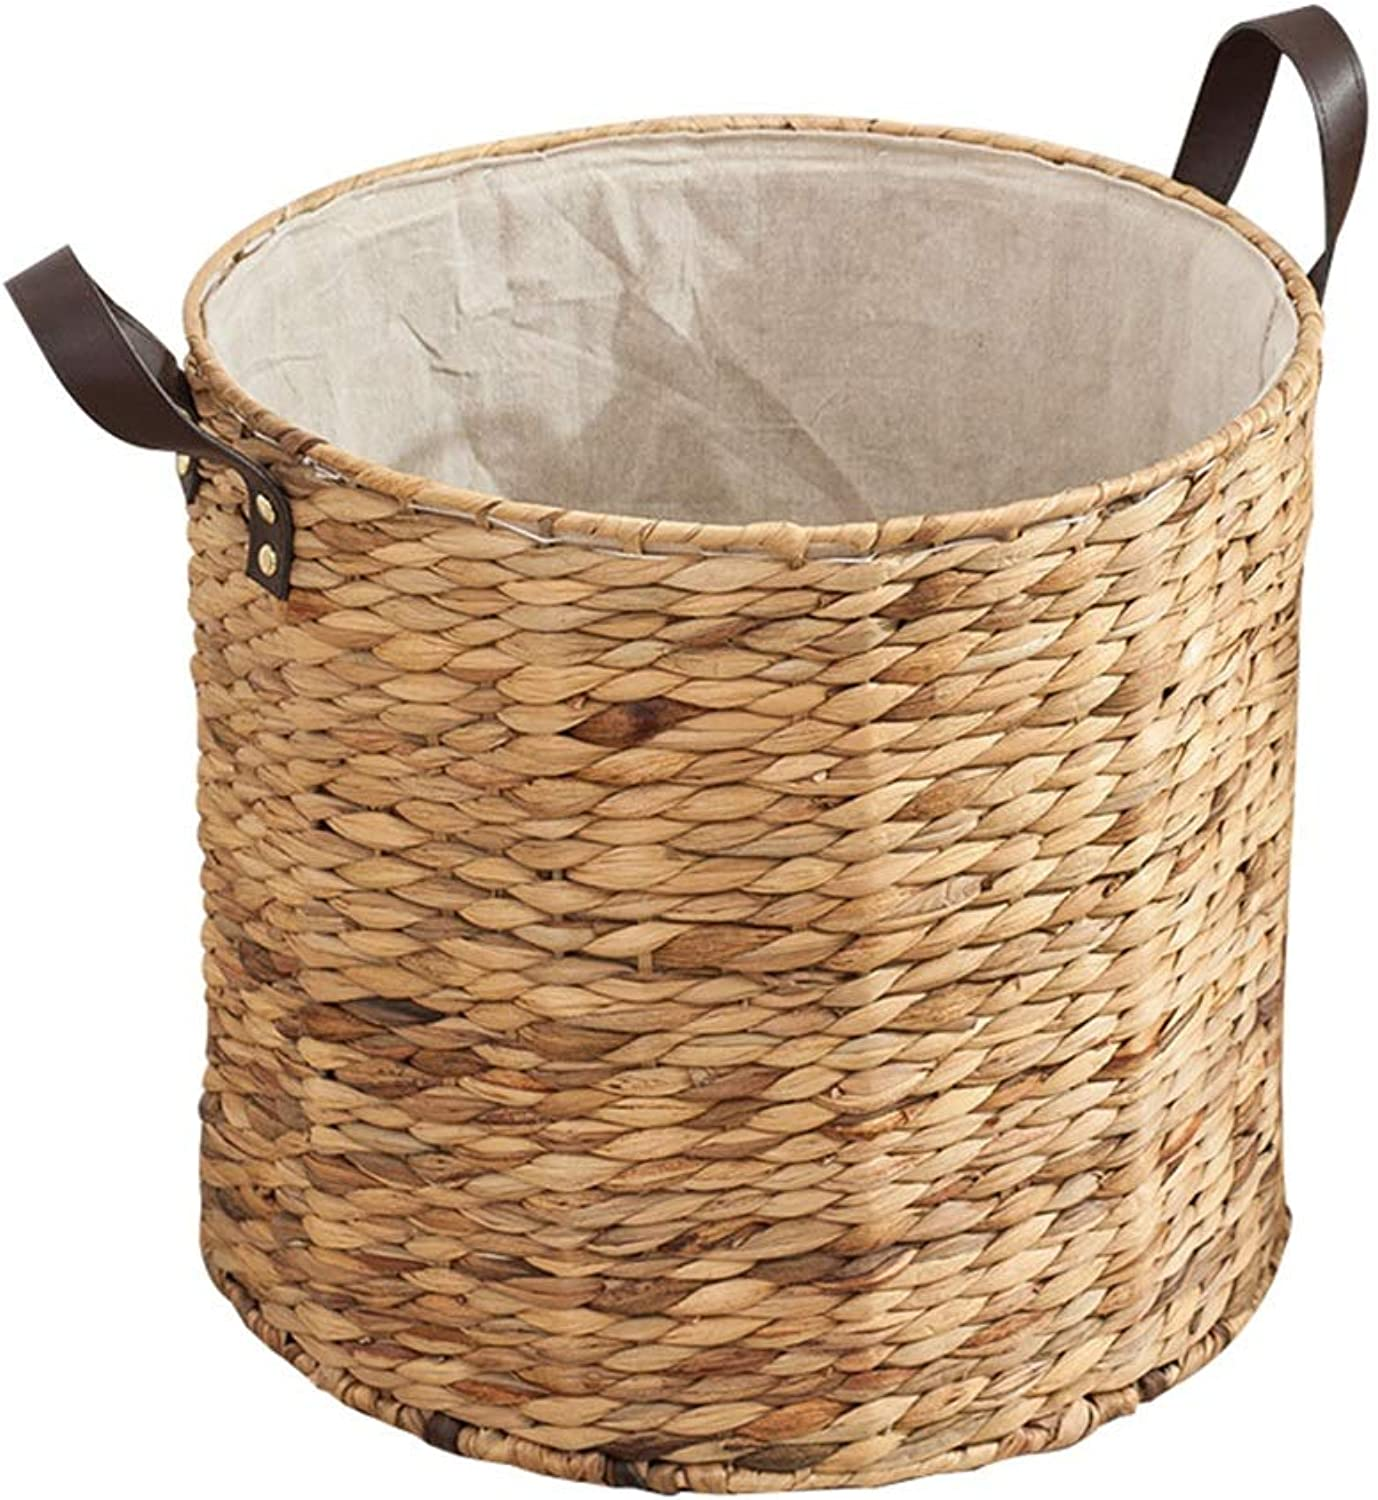 ZHANGQIANG Storage Basket Laundry Basket Laundry Basket Large Standing Convenient Rectangular, Dirty Clothes Rack Storage Basket, Waterproof Inner Ash (color   Wood color, Size   Medium)